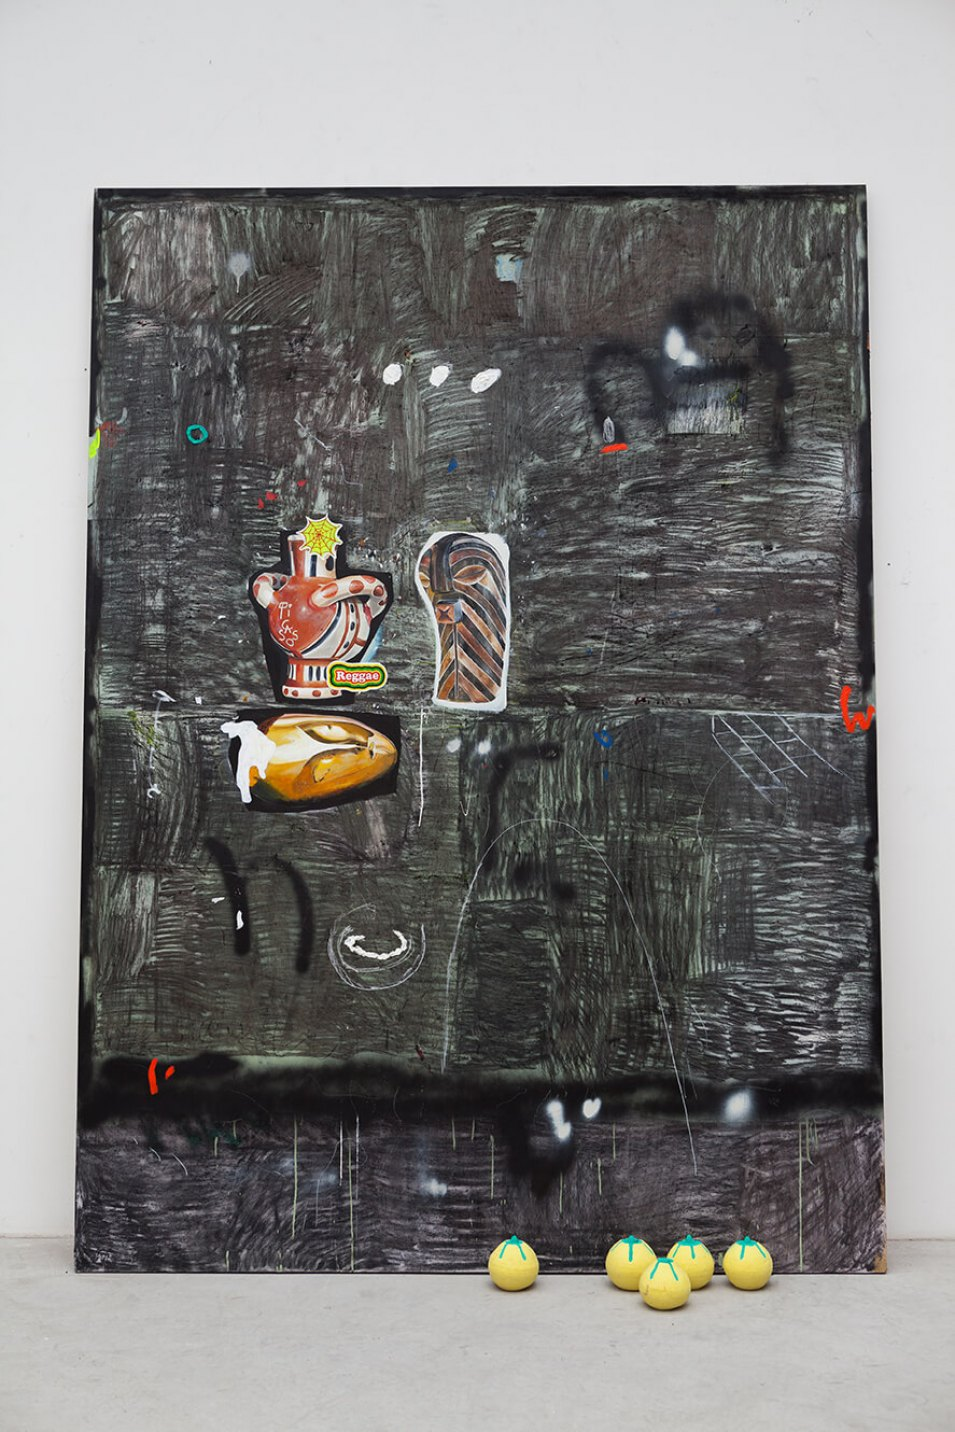 Paulo Nimer Pjota, <em>Democratic Republic of the Congo part. I</em>, acrylic, oil, pencil, pen, charcoal and pastel on wood, and ceramic objects, 2015, 218 × 160 × 43 cm - Mendes Wood DM